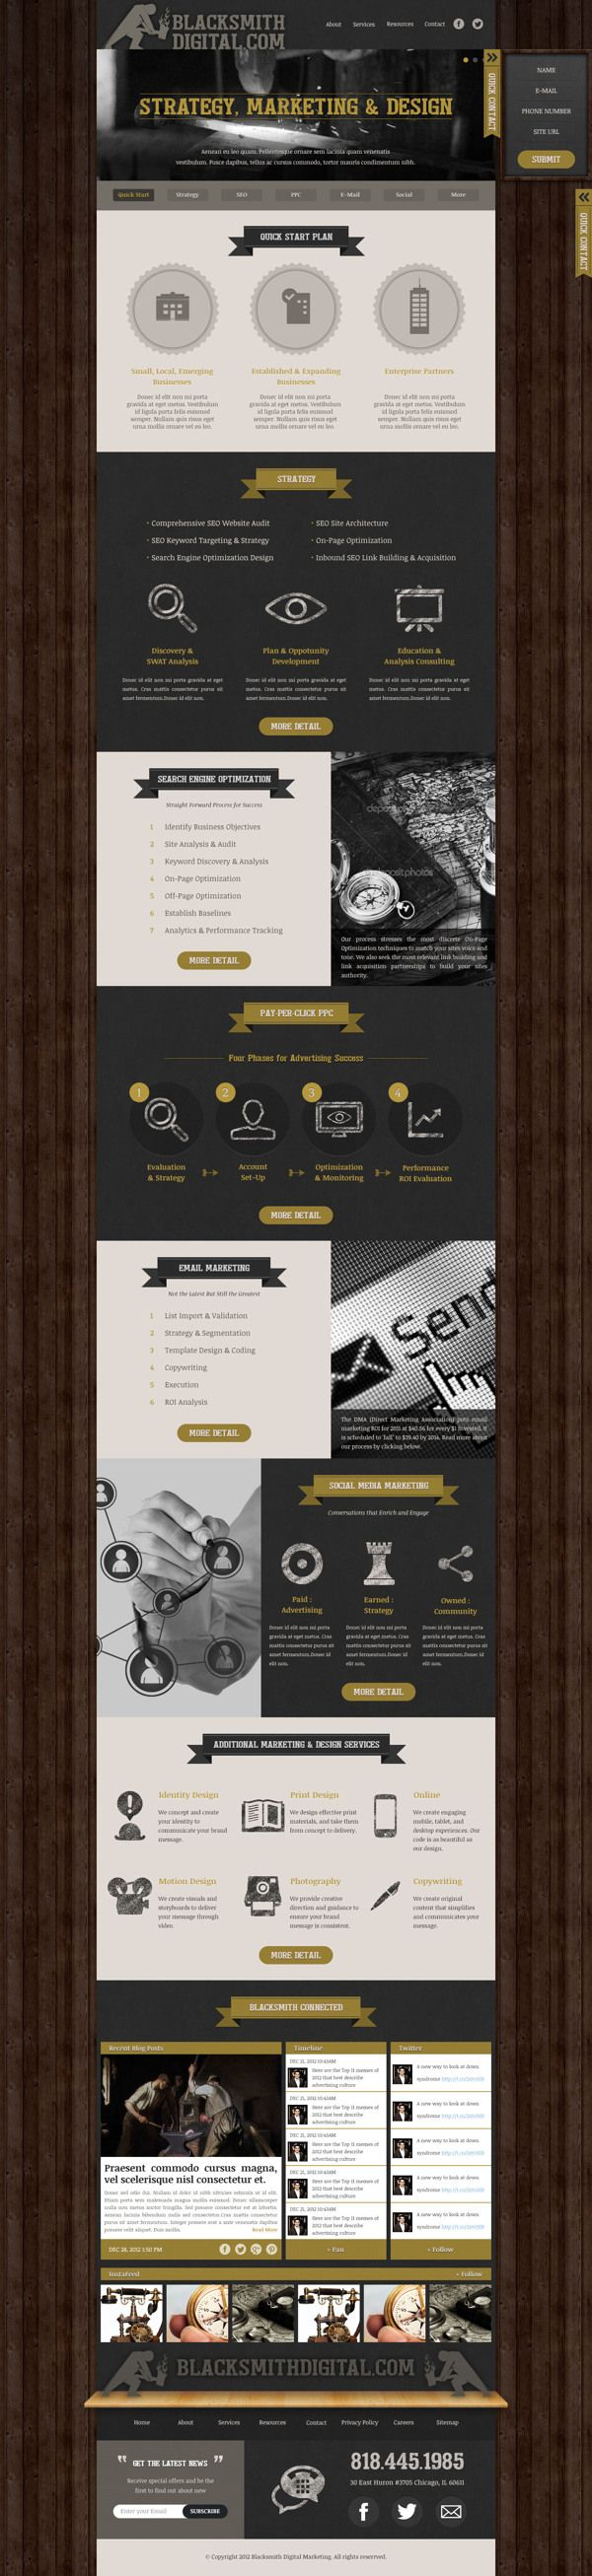 Digital Agency Blacksmithdigital.com wesite design by Jade Choi, via Behance